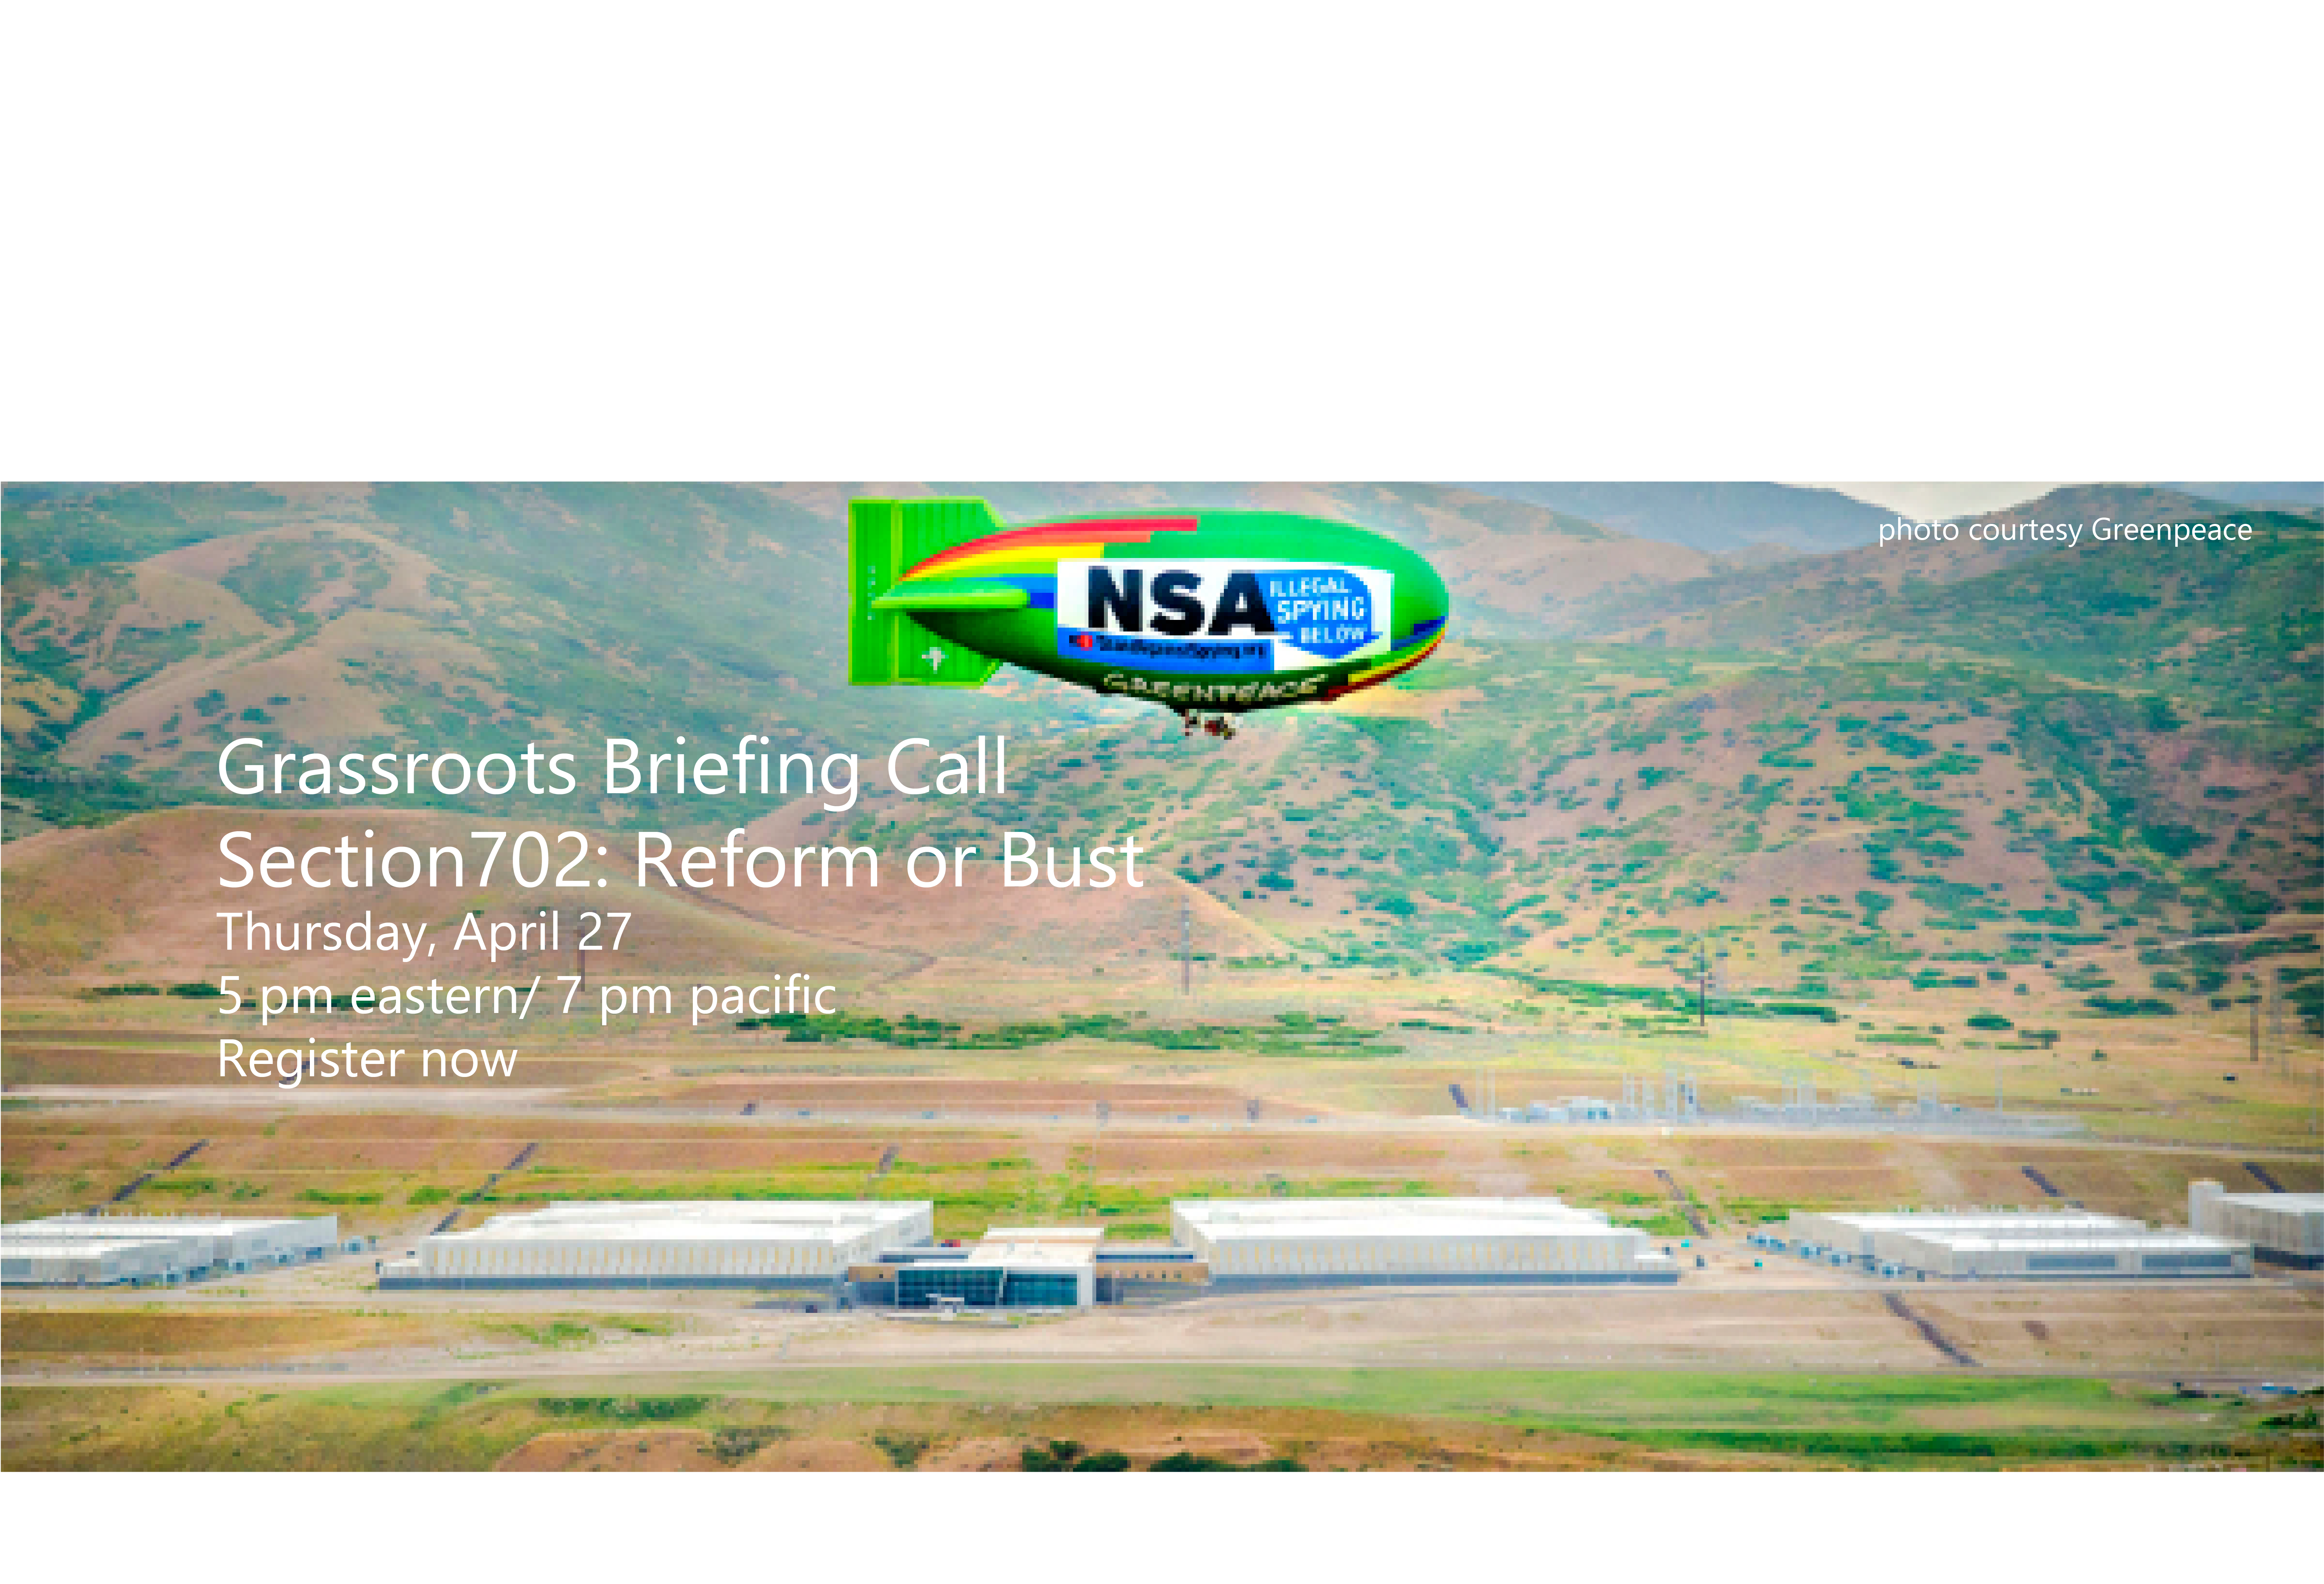 Greenpeace blimp above NSA data center